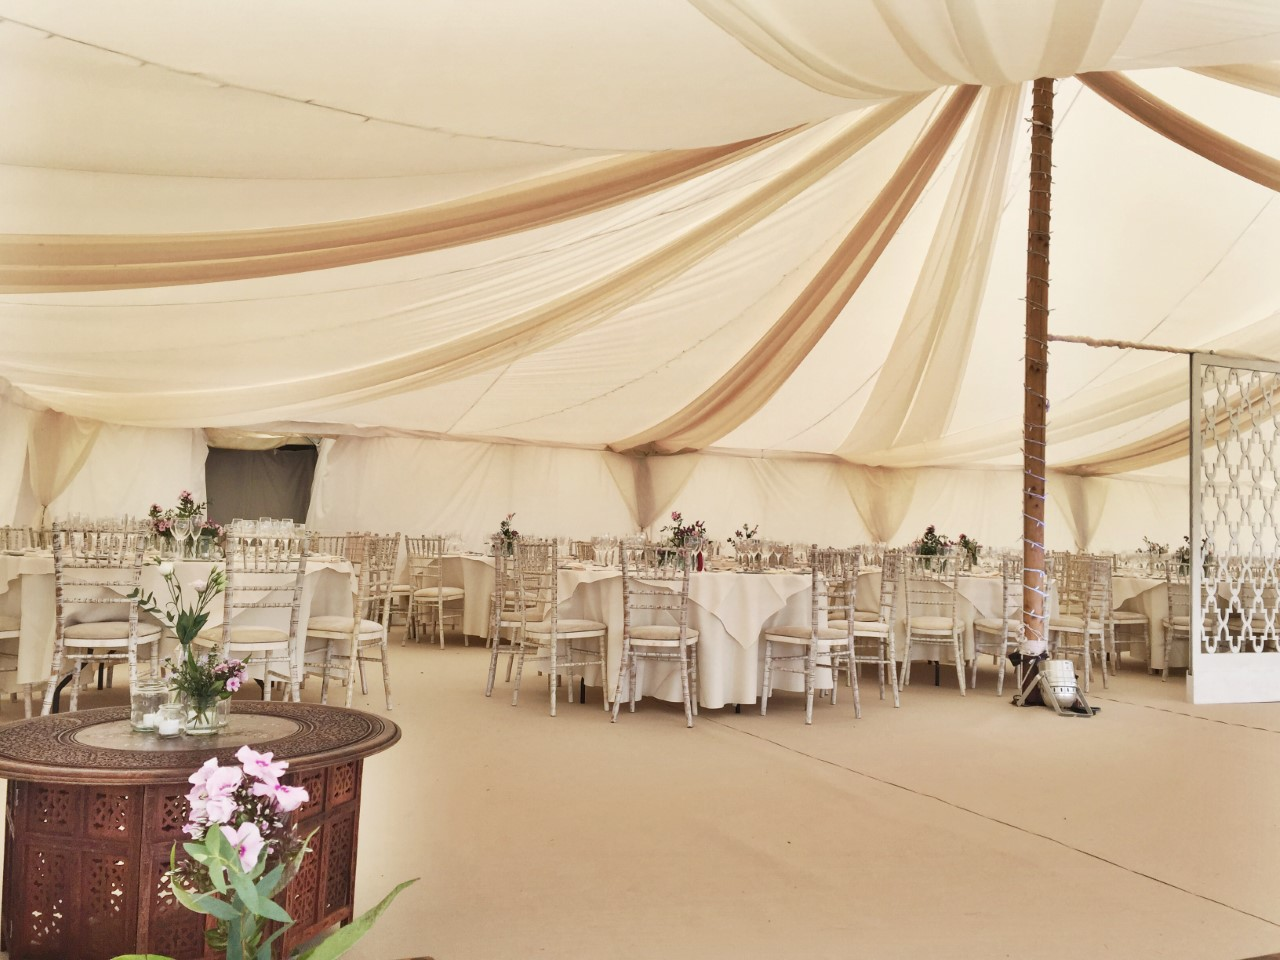 Inside the beautiful marquee.